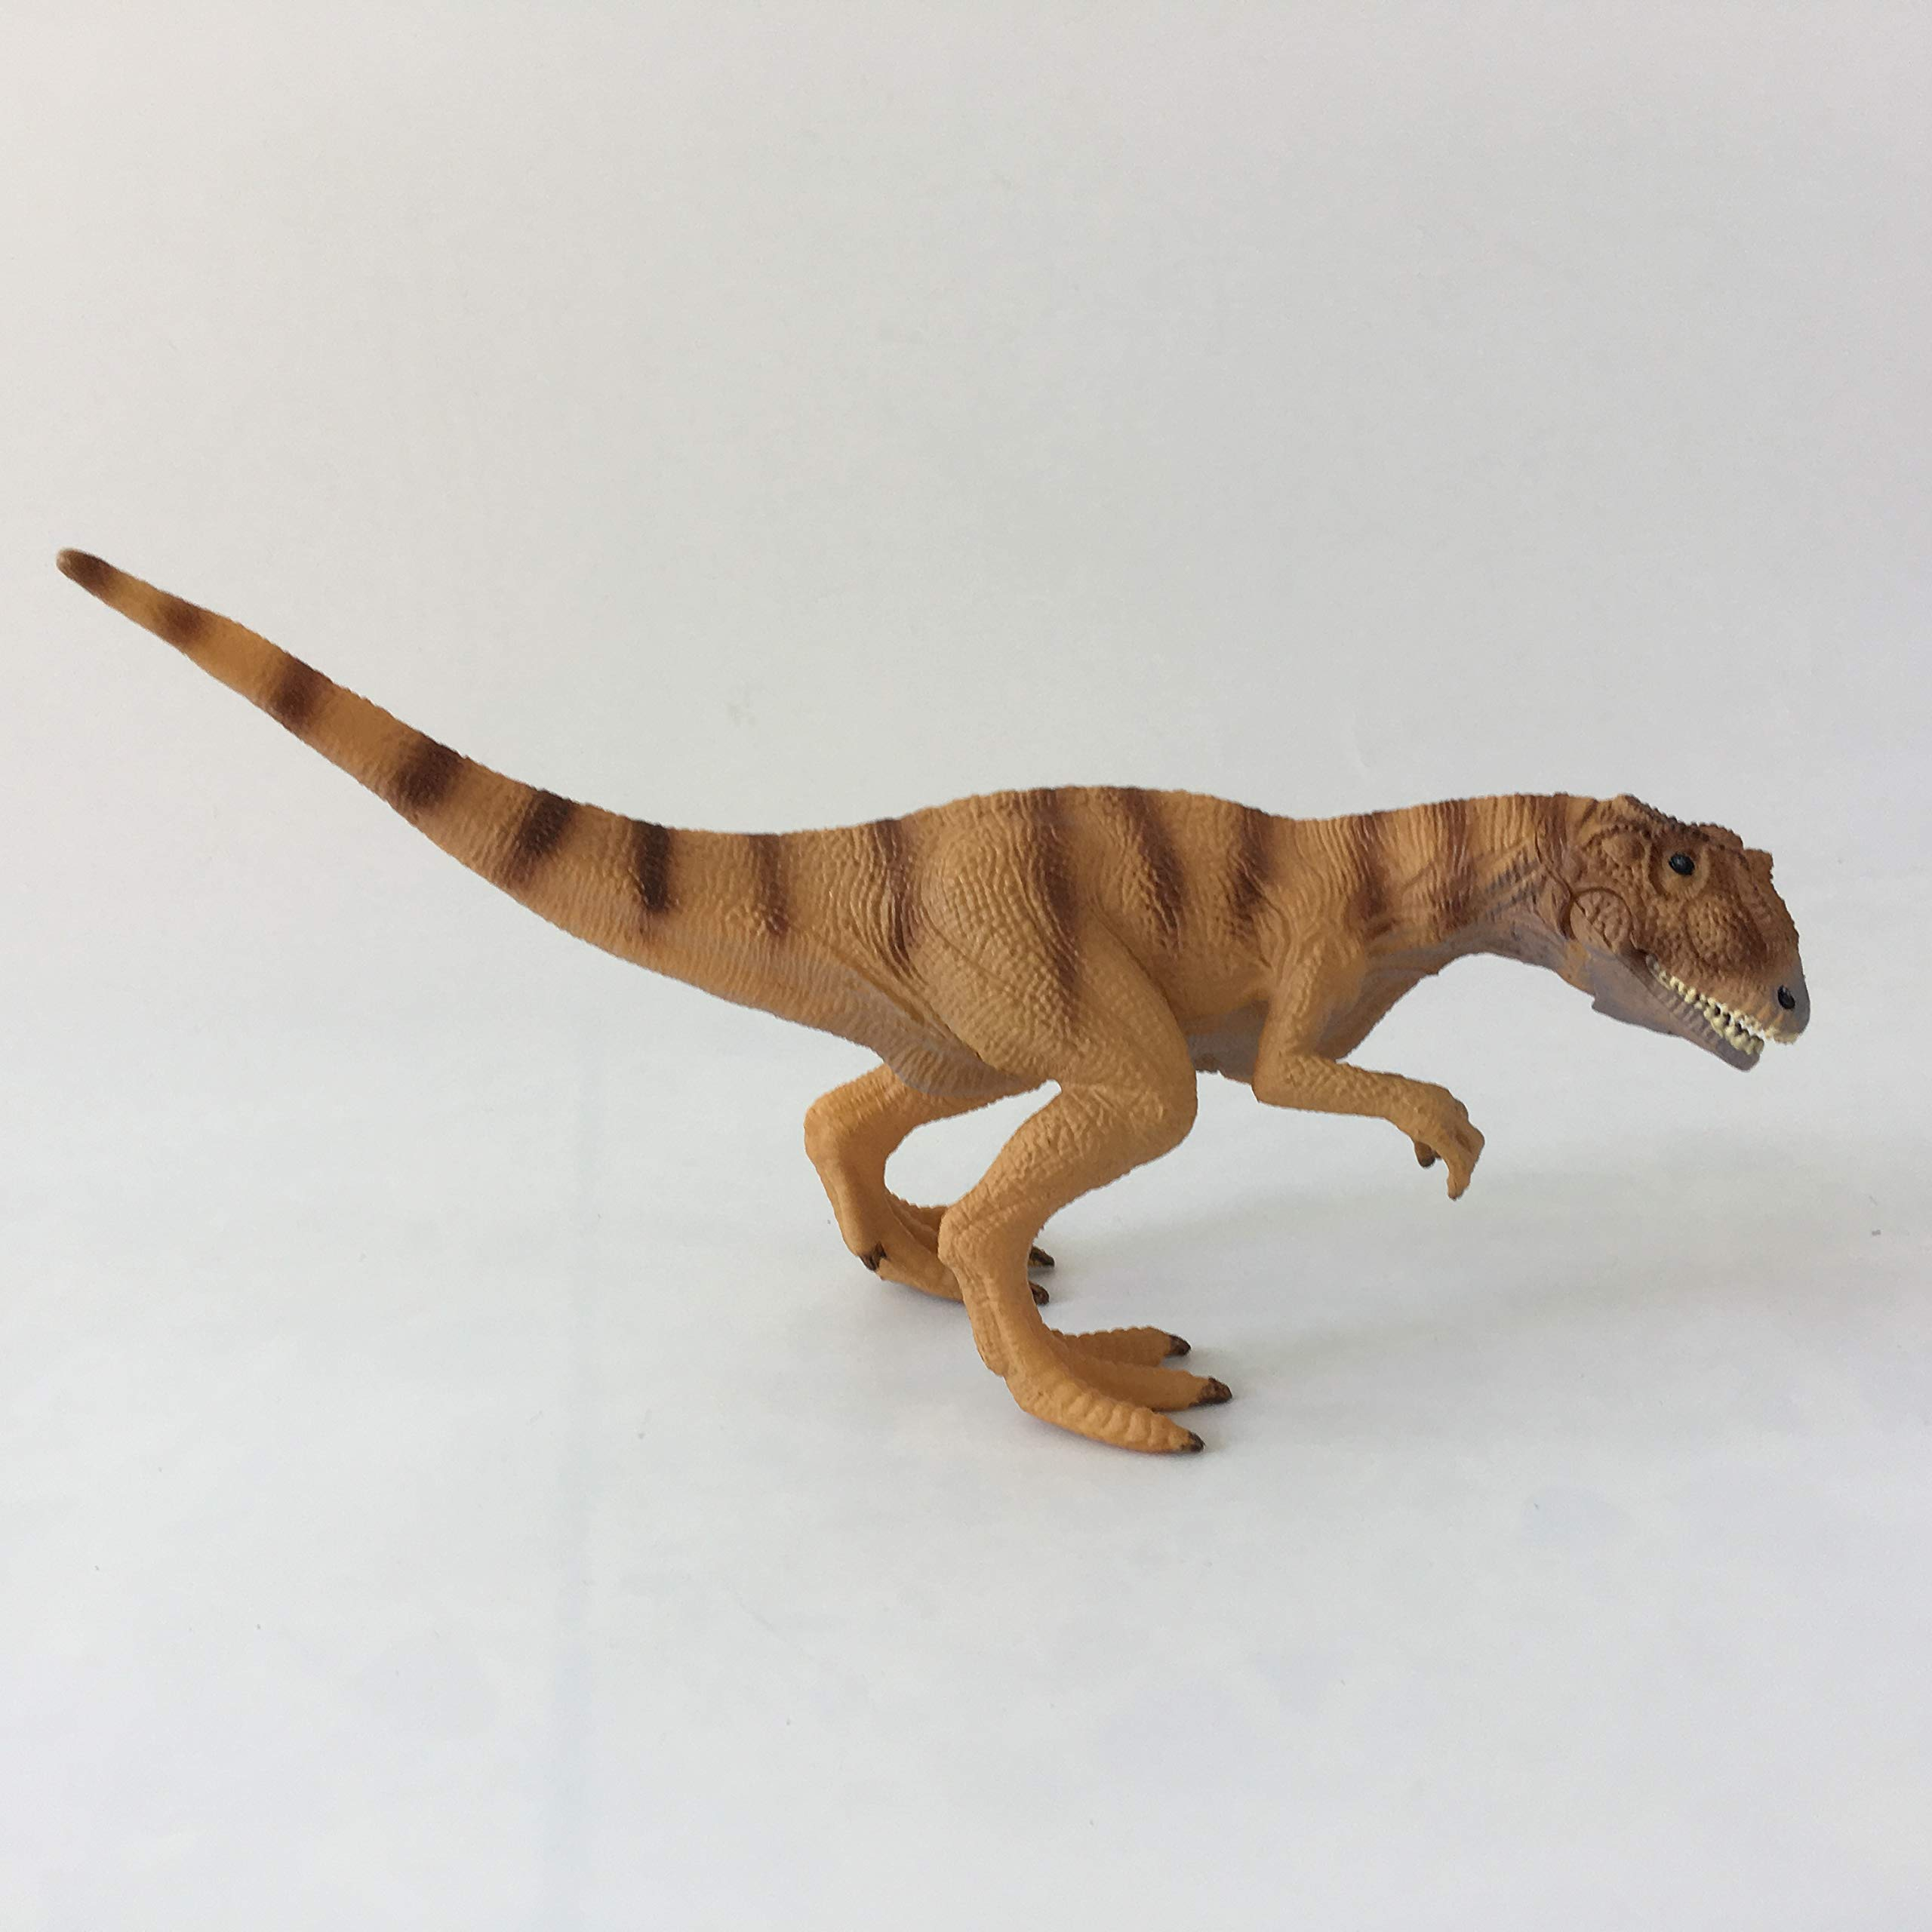 ZXLZKQ Jurassic Dinosaur Educational Dinosaur Toys for Toddlers and Older Kids Boys and Girls - M5006